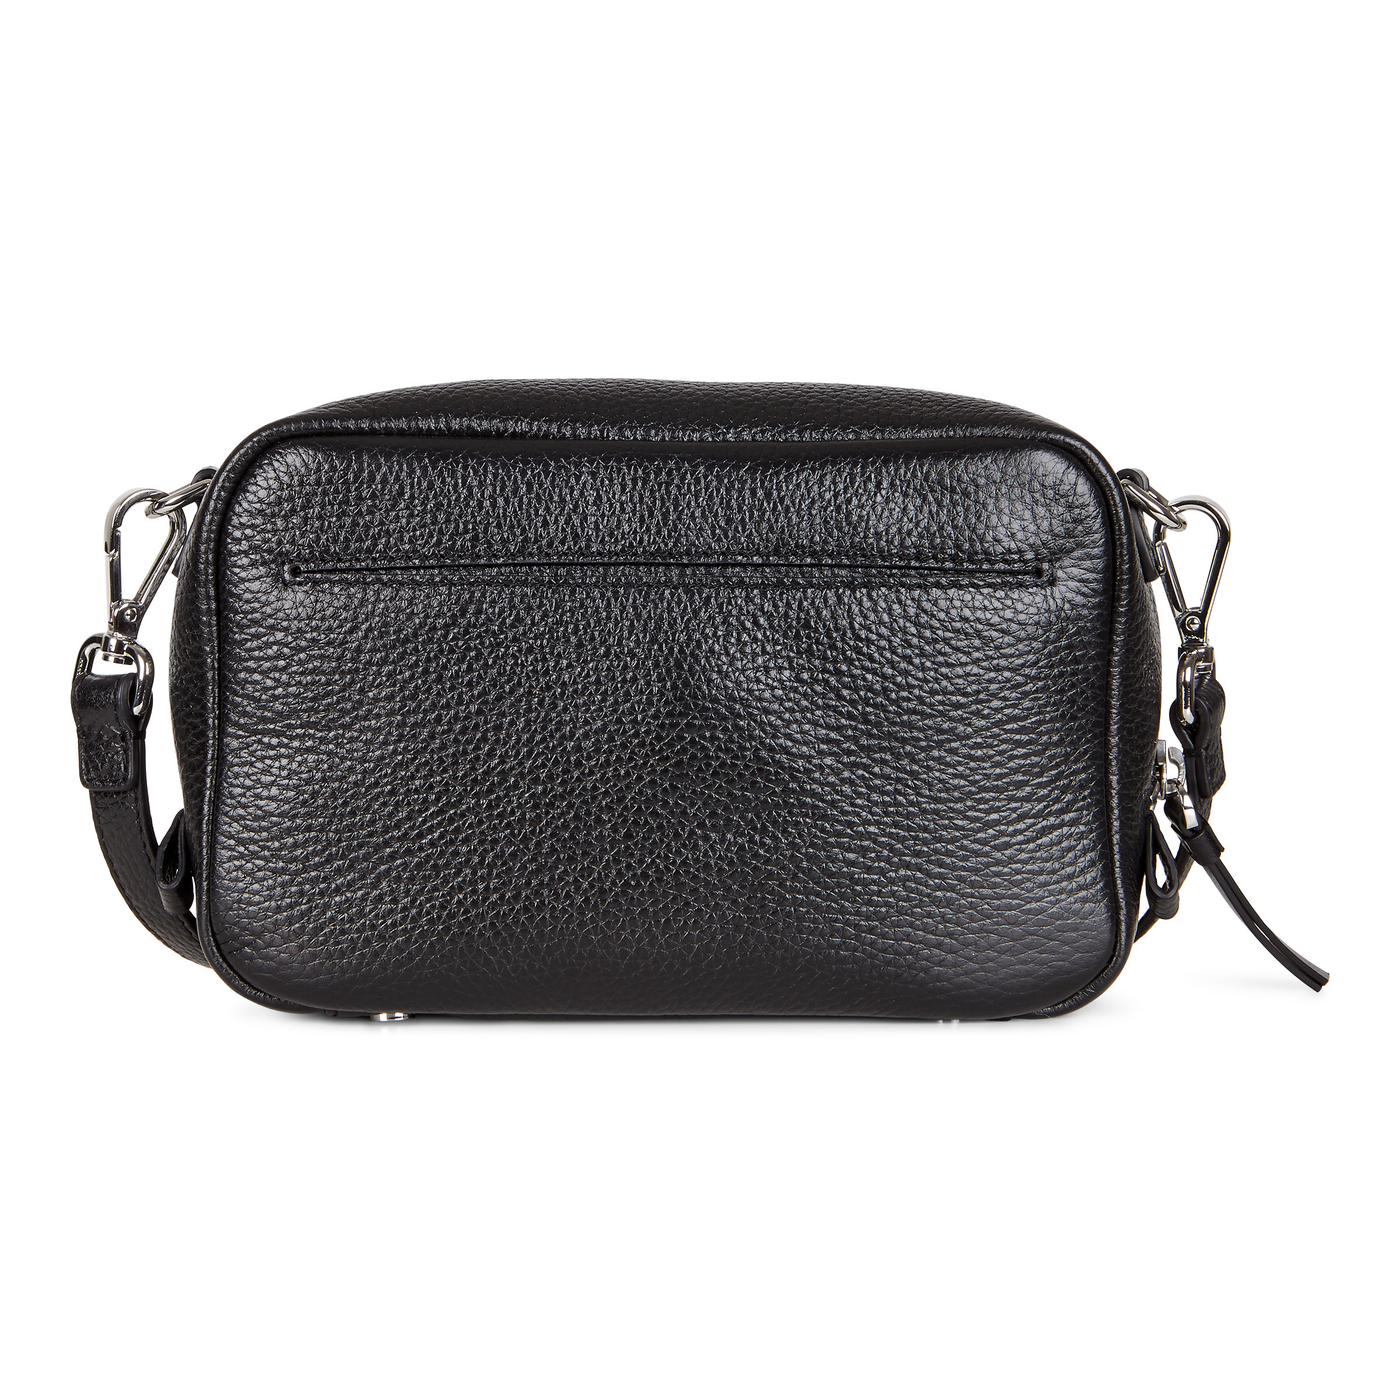 ECCO SP3 Medium Boxy Bag